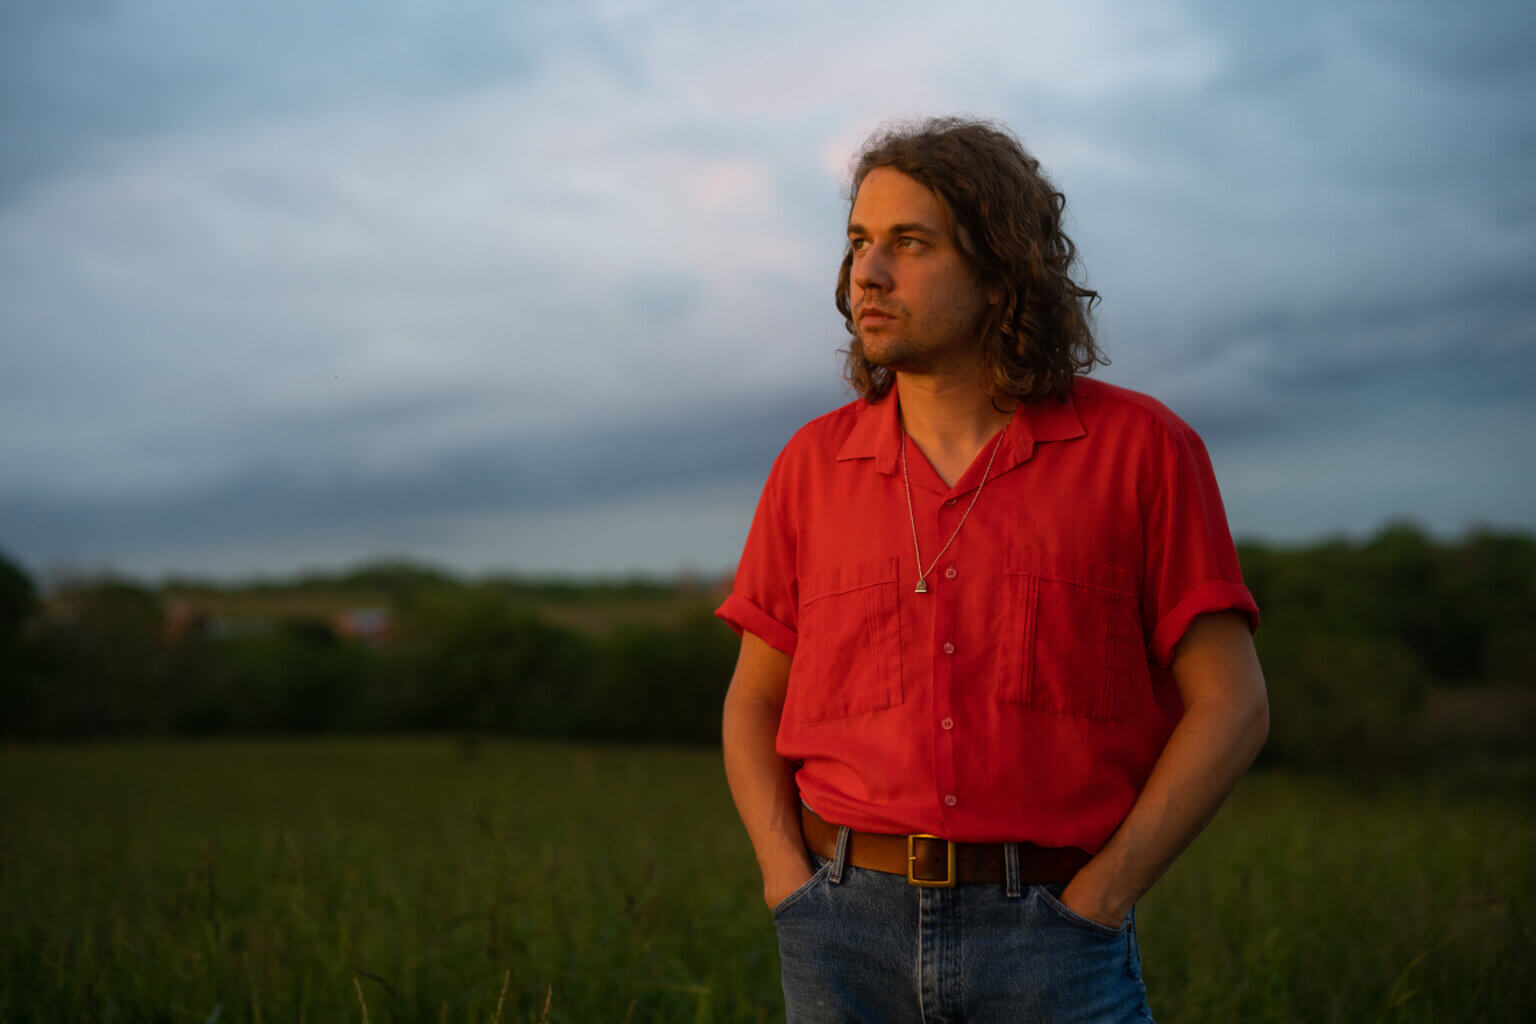 Kevin Morby interview with Northern Transmissions by Adam Fink